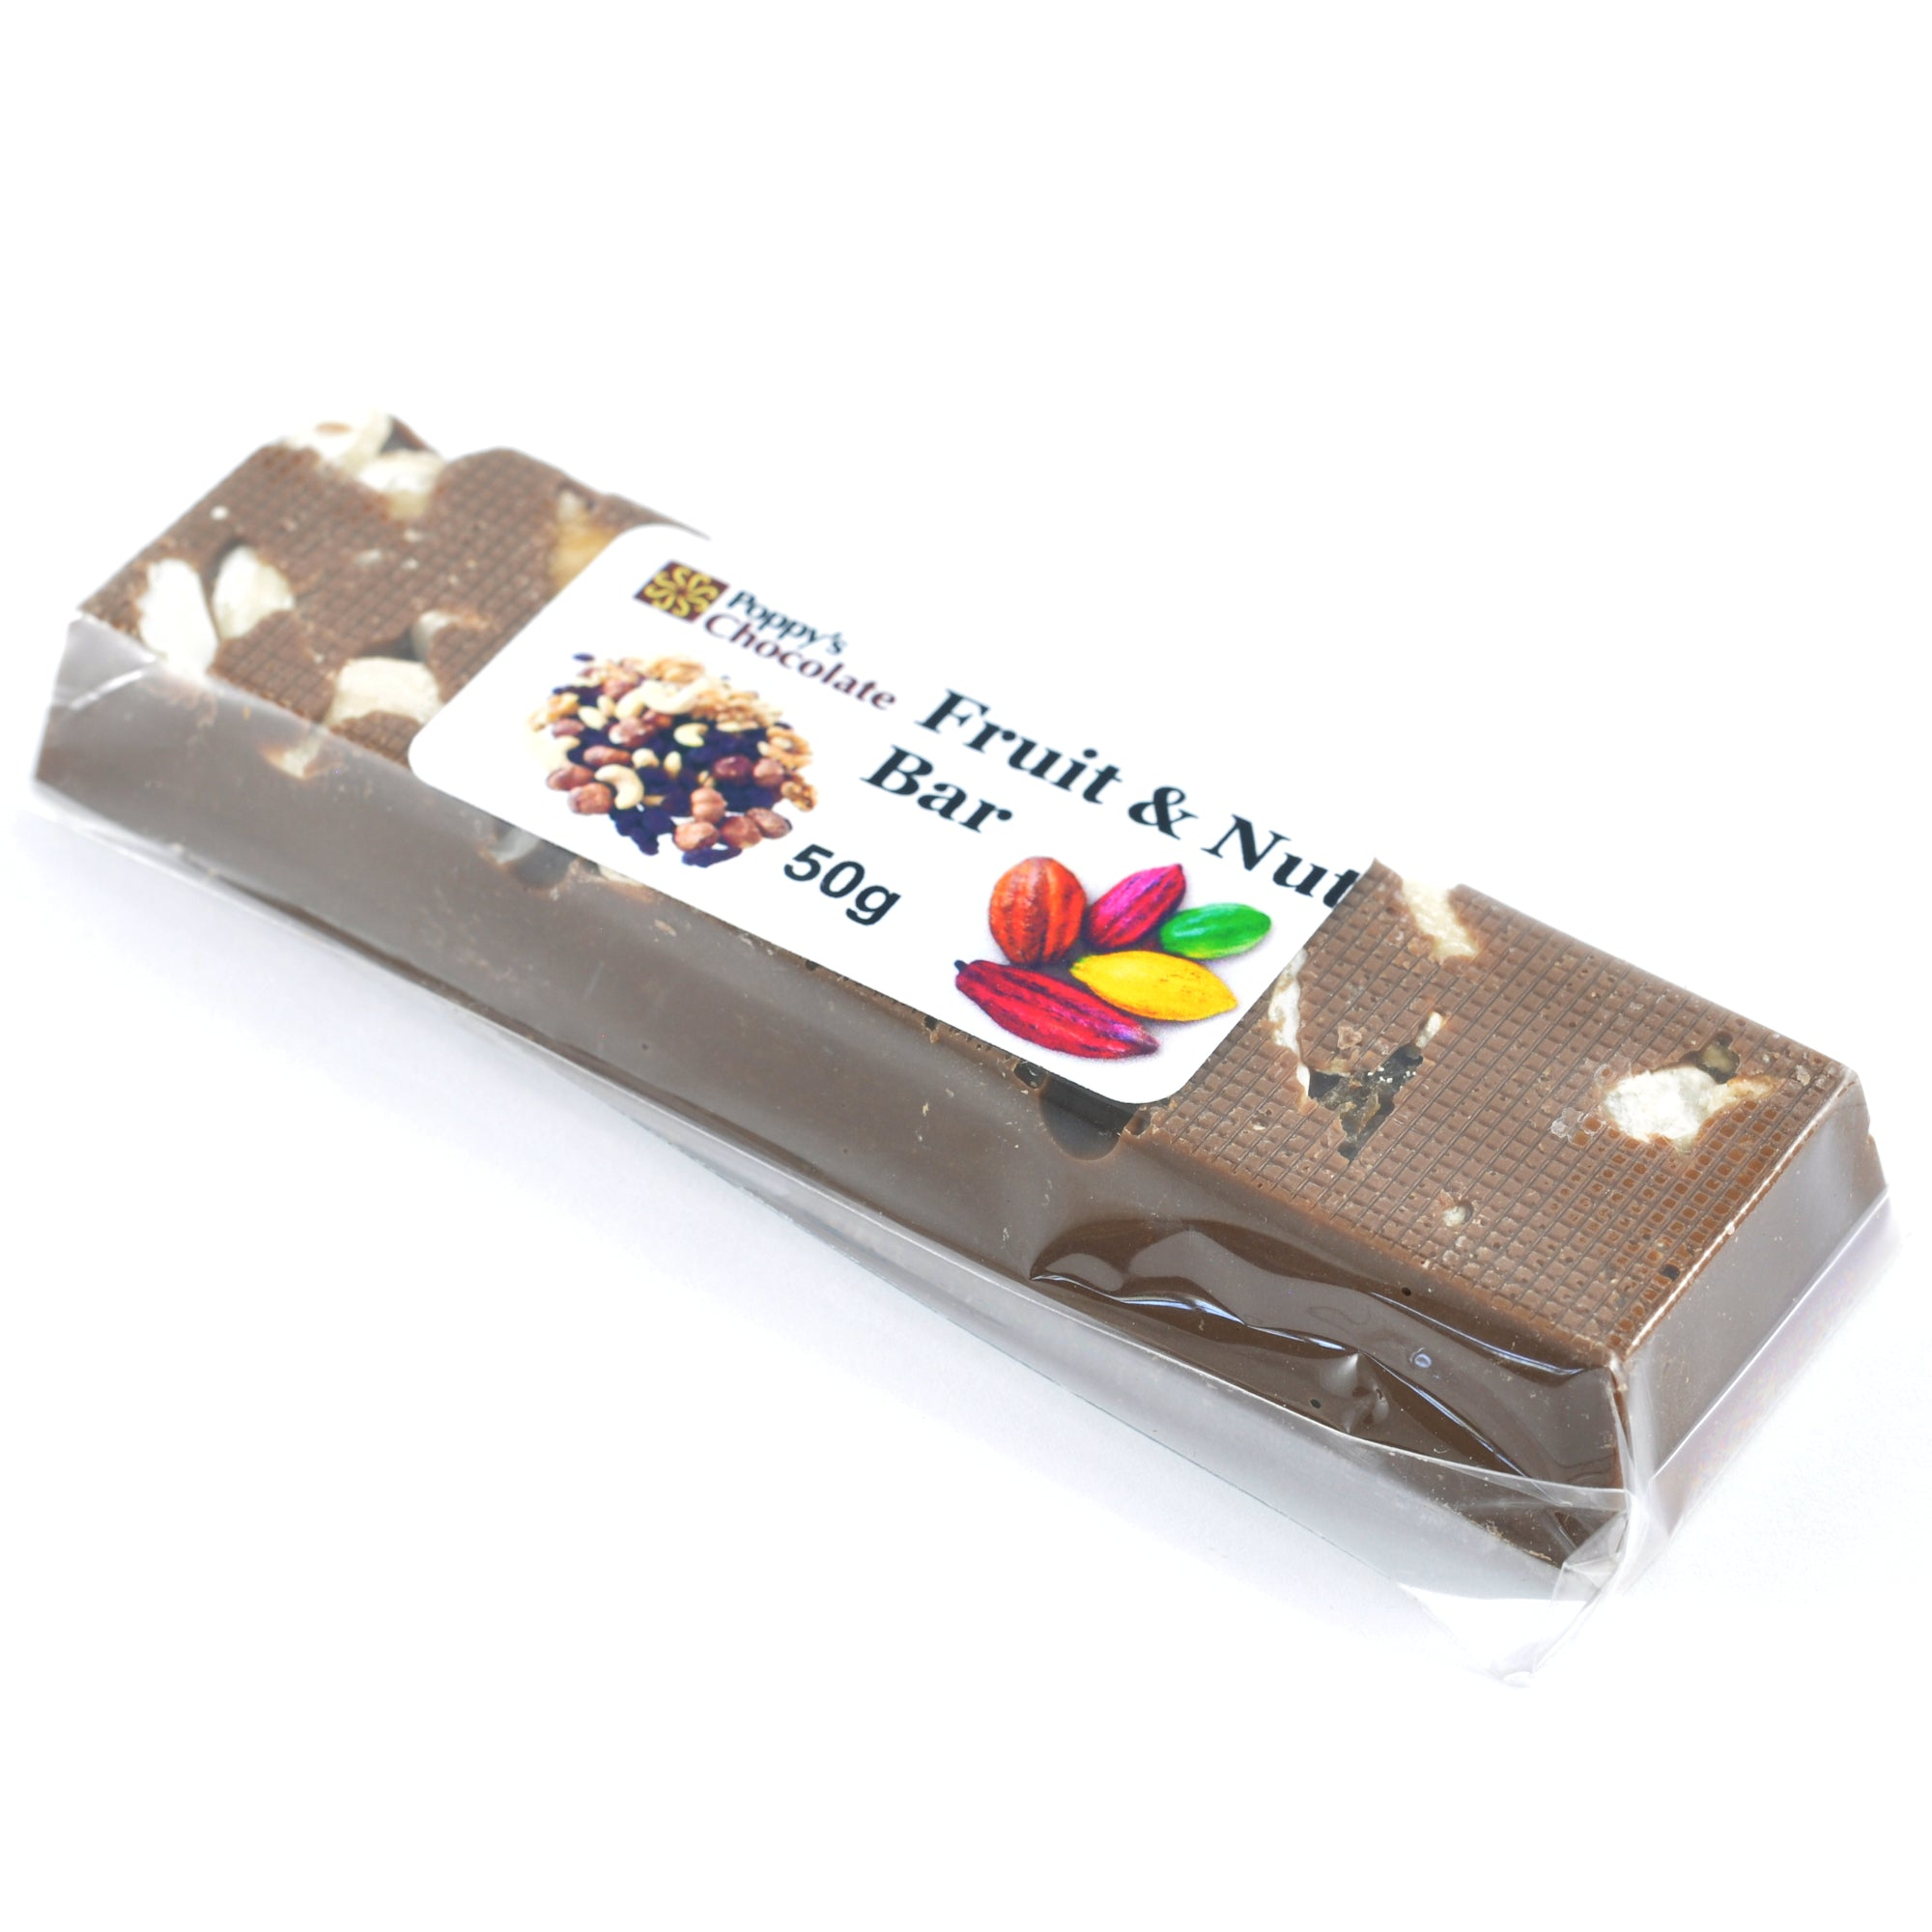 Fruit & Nut Bar 50g